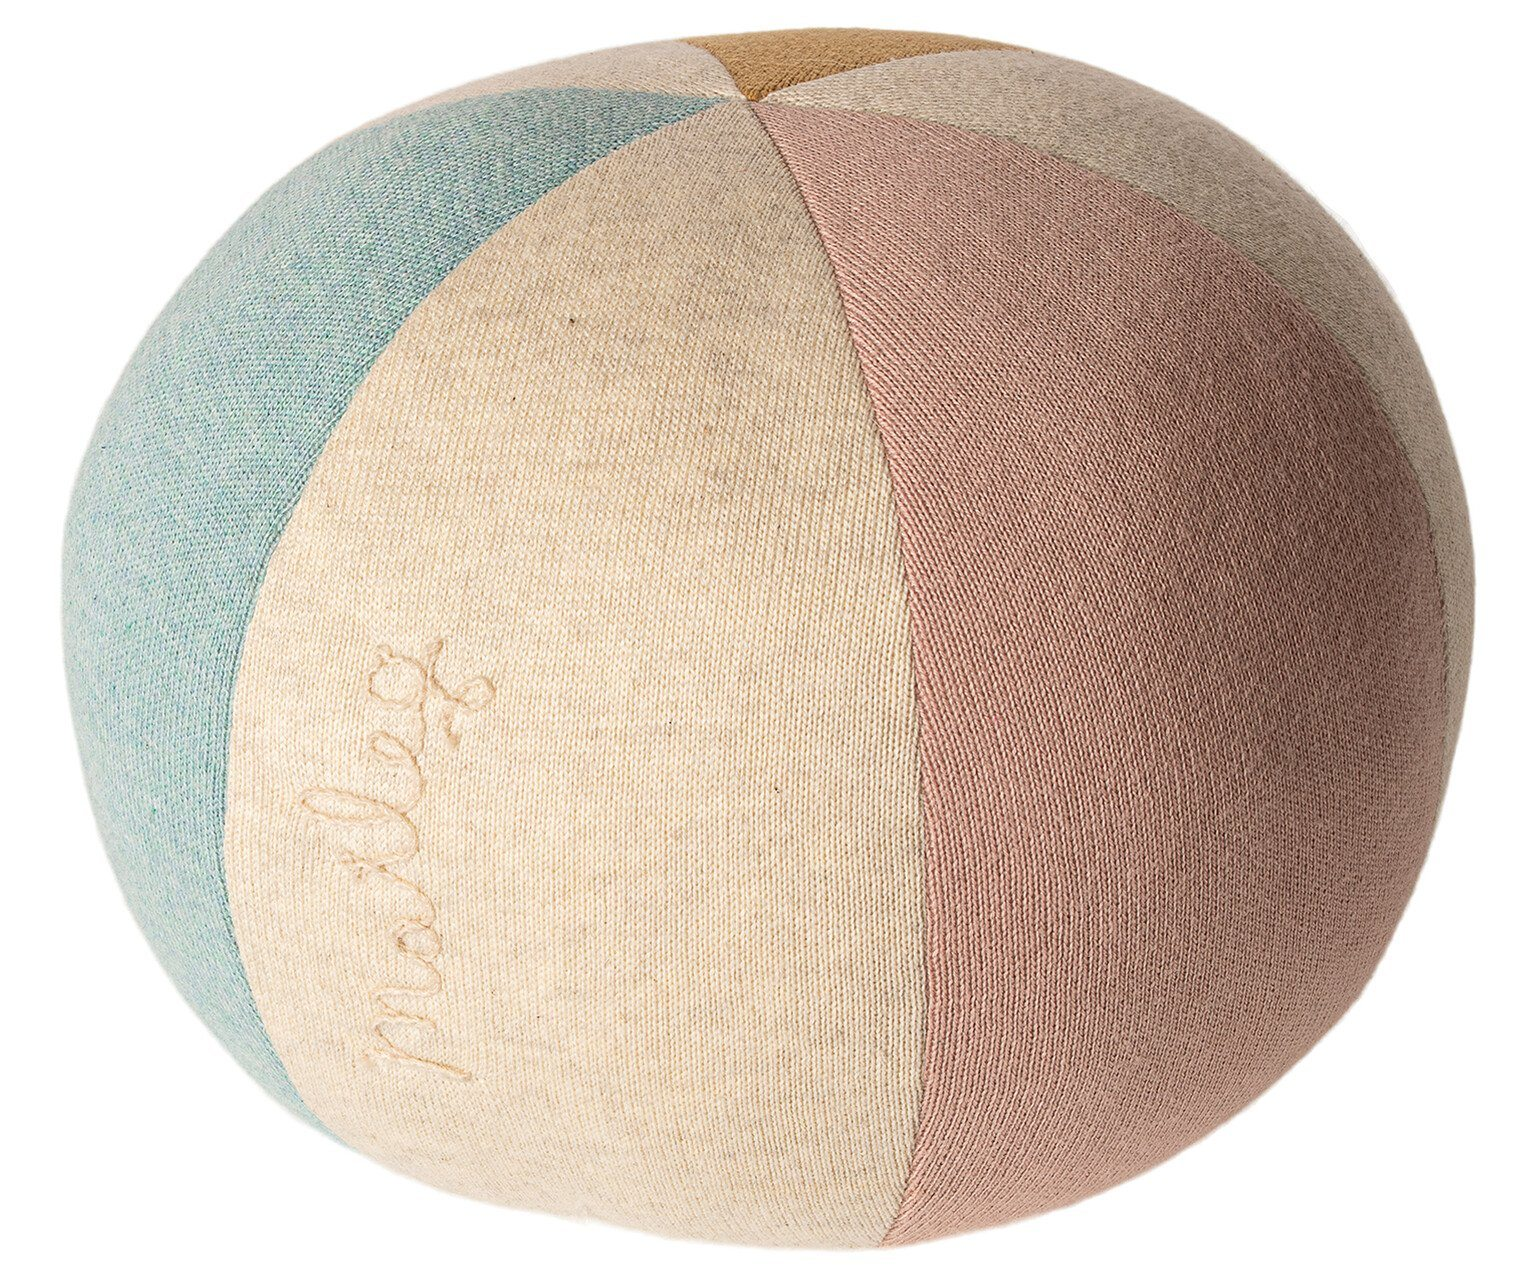 Small Ball Cushion Light Blue Rose - BouChic